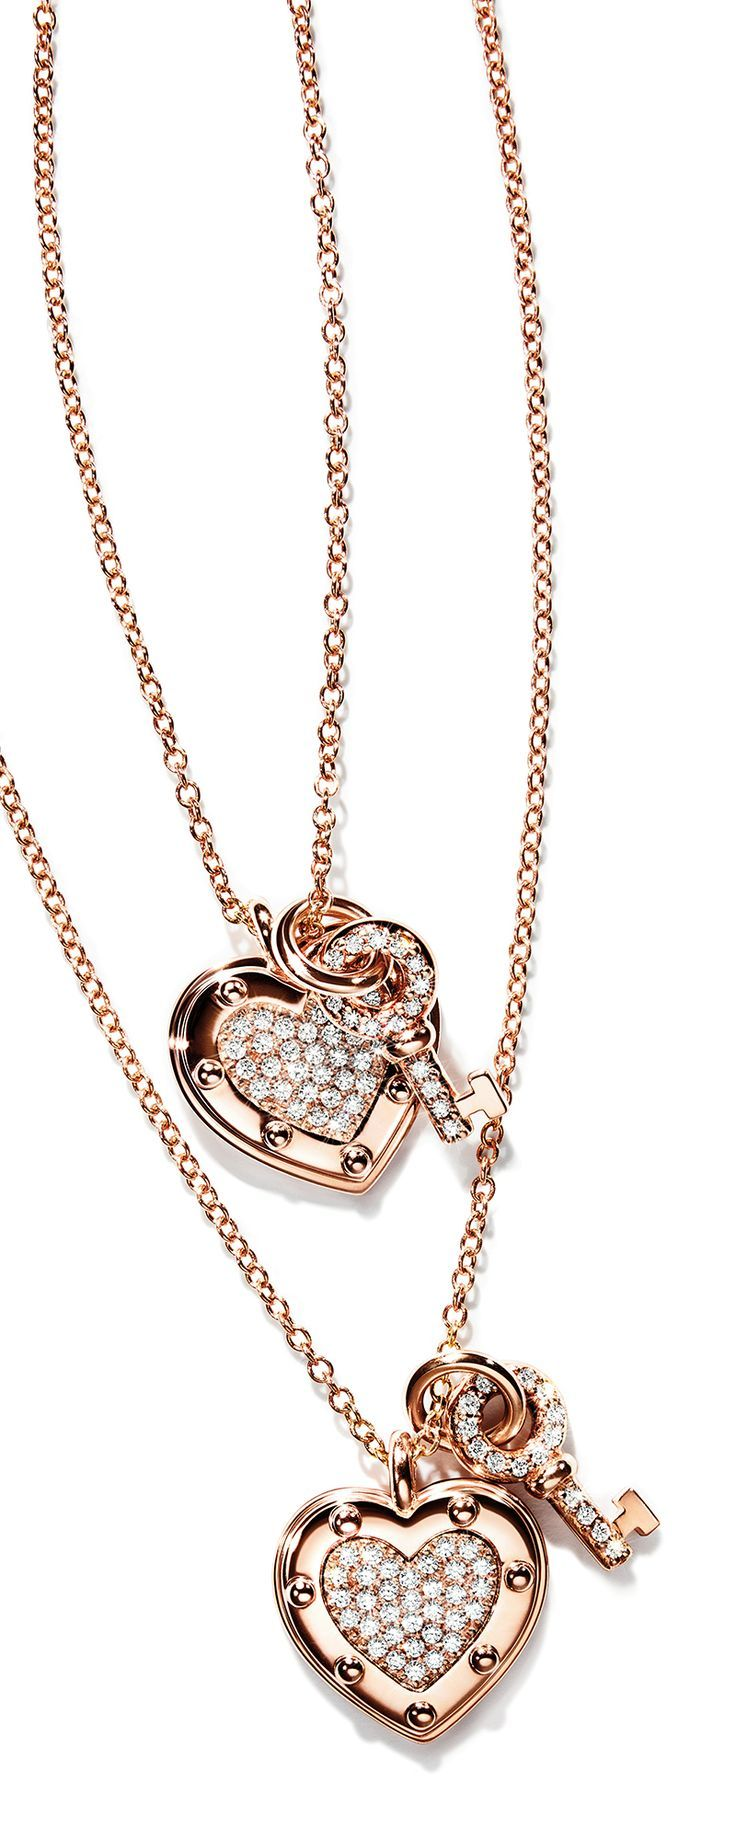 Return To Tiffany Love Heart Tag Key Pendants In 18k Rose Gold With Diamonds Jewelry Real Gold Jewelry Gold Jewelry Outfits